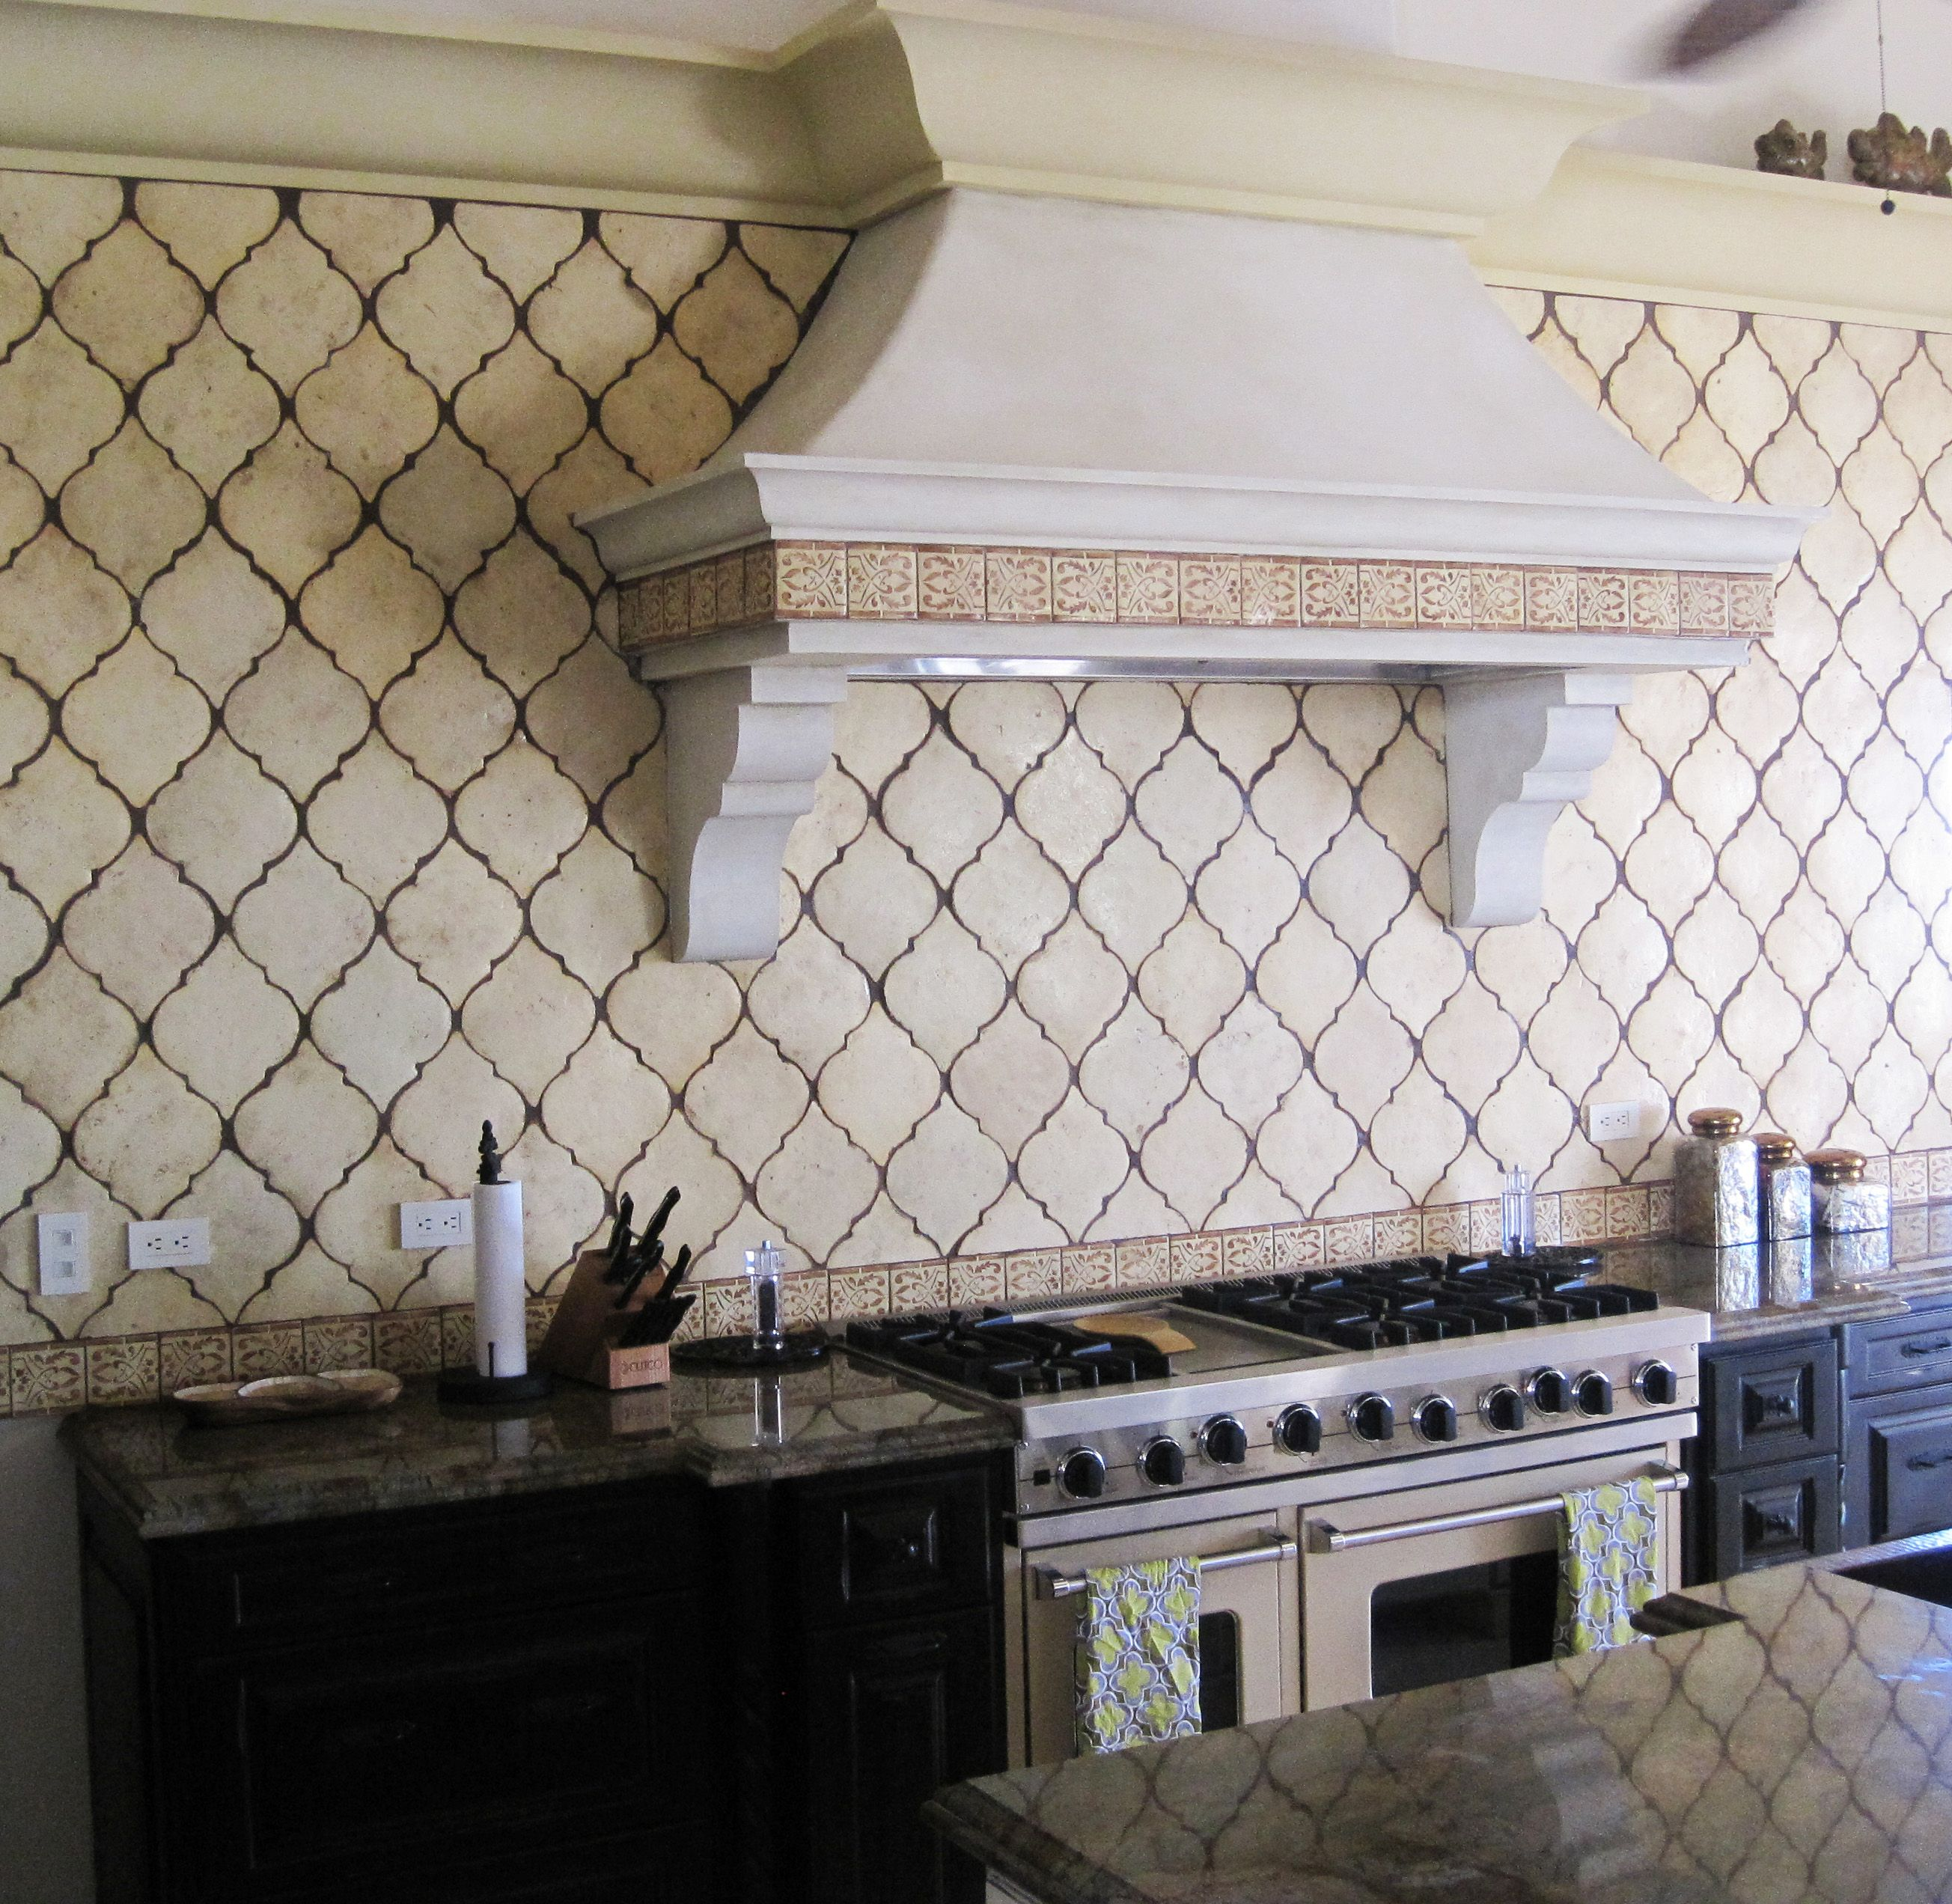 Arabesque Tile Backsplash Shape Adds Old World Texture Without Adding A Lot Of Pattern The